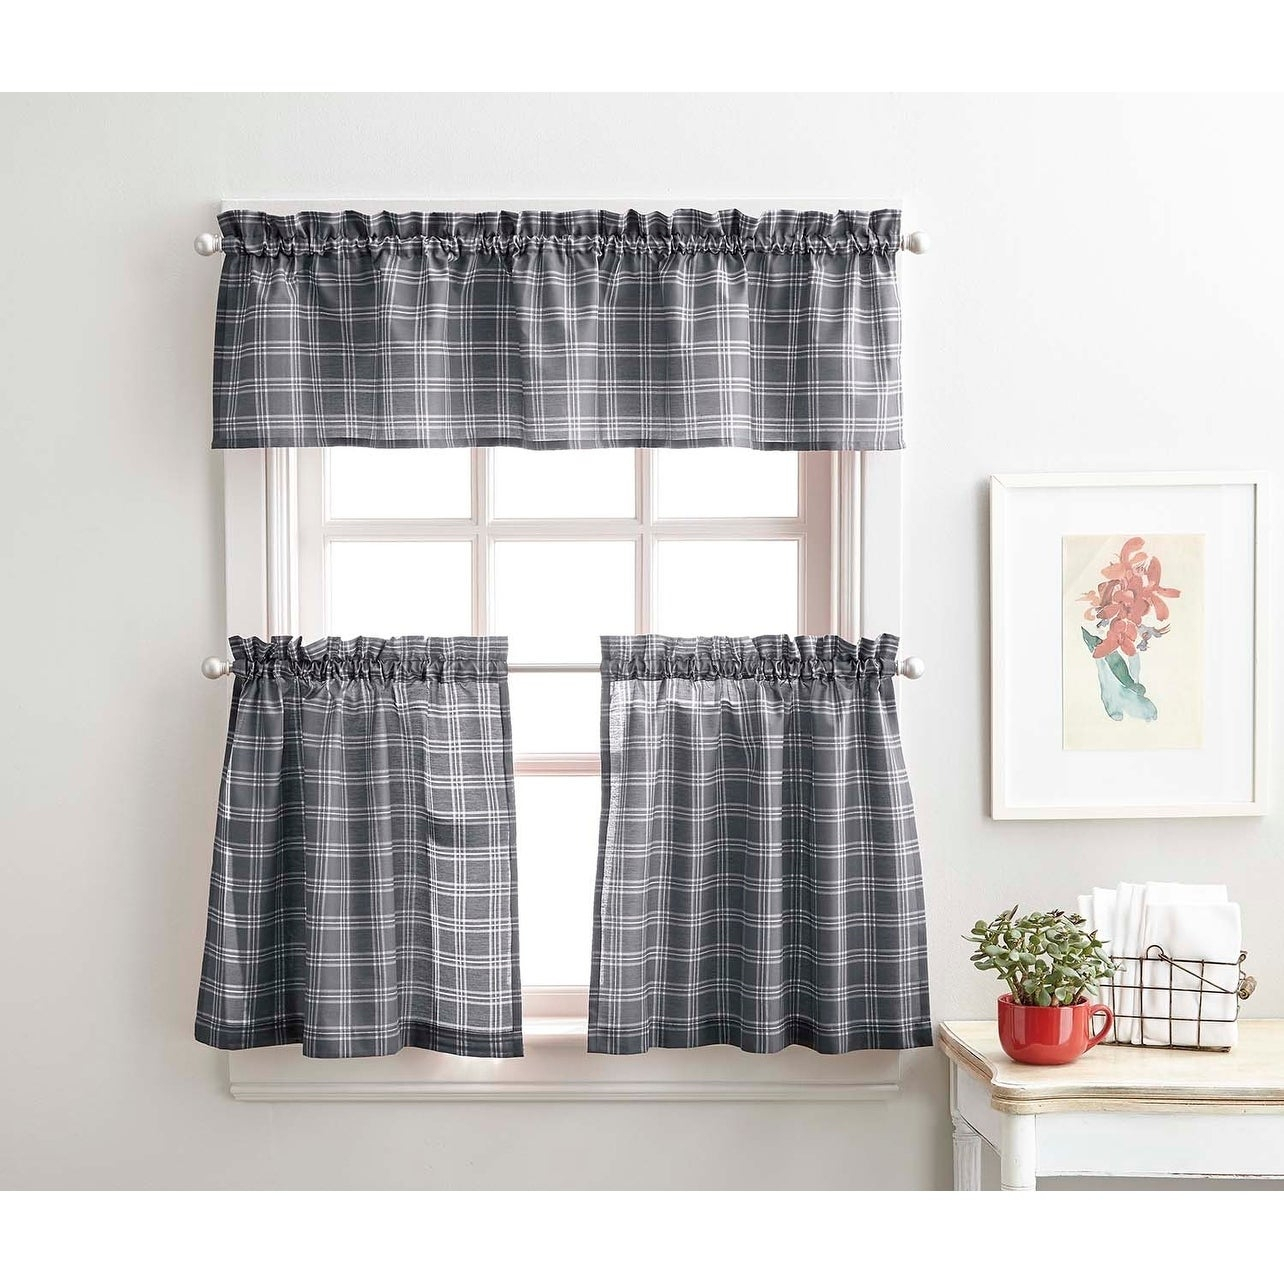 "Lodge Plaid 3 Piece Kitchen Curtain Tier And Valance Set – 36"" 3pc Set Within Grey Window Curtain Tier And Valance Sets (View 8 of 20)"